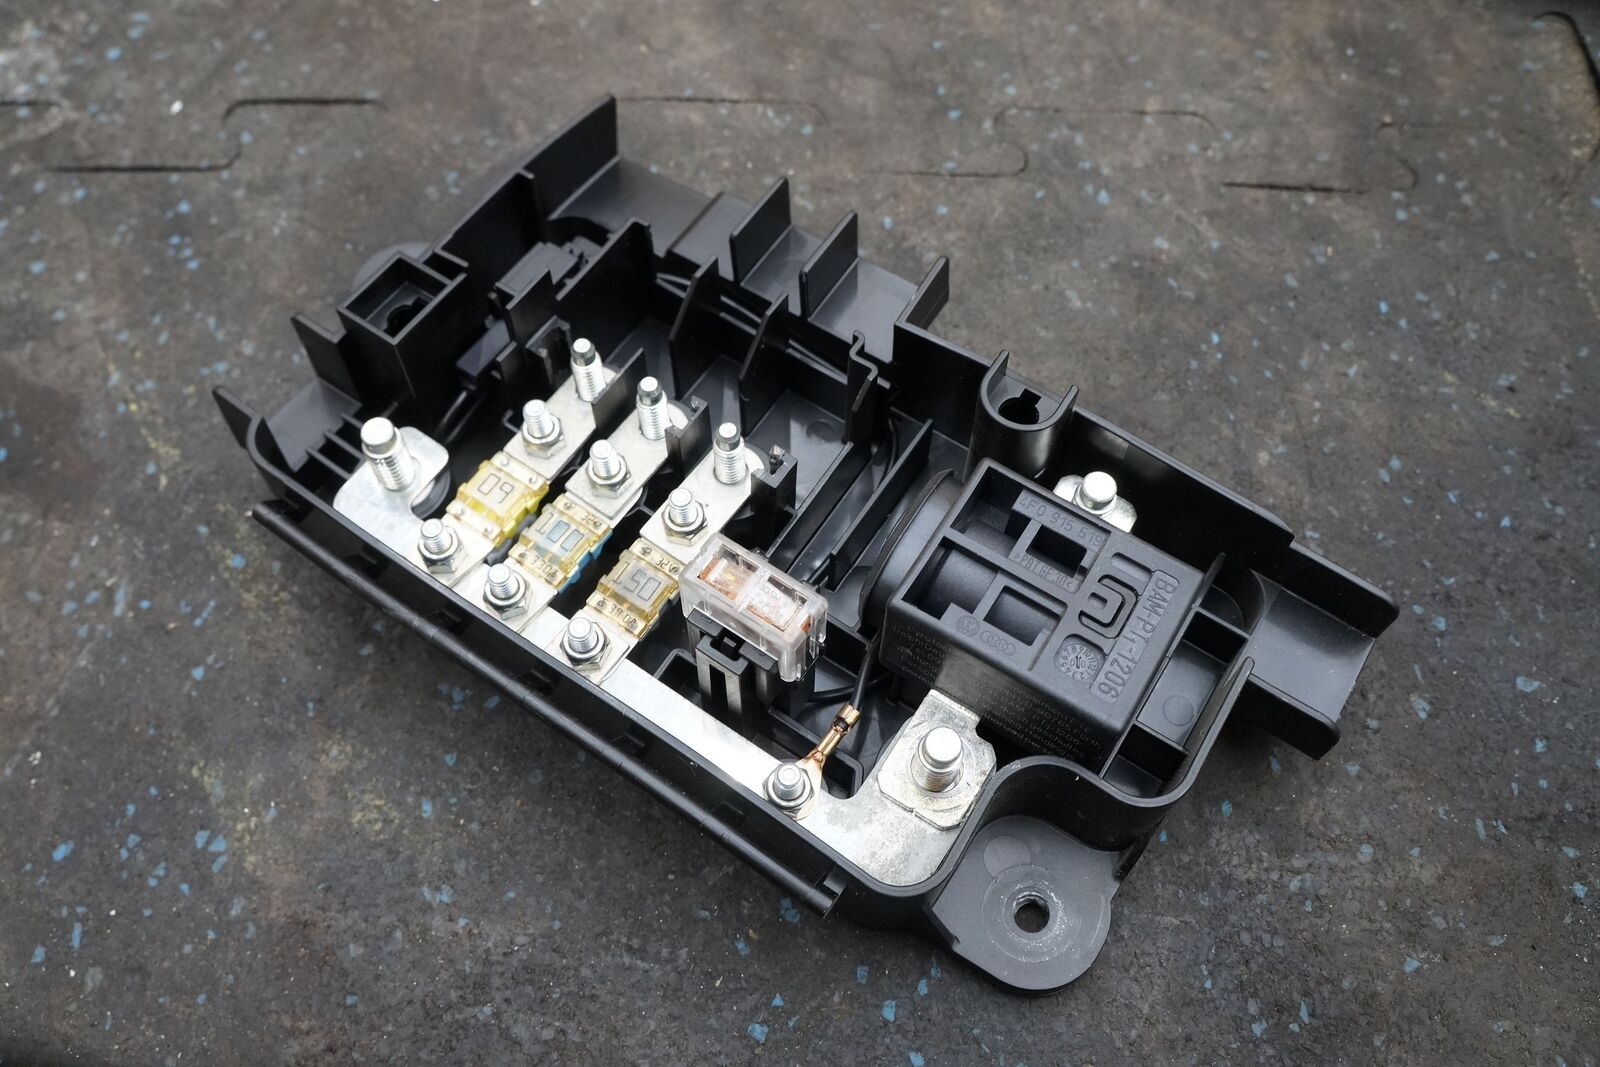 Audi R8 V10 Fuse Box Diagram Diy Enthusiasts Wiring Diagrams \u2022 Fuses  2005 Audi TT Audi Tt Mk3 Fuse Box Location